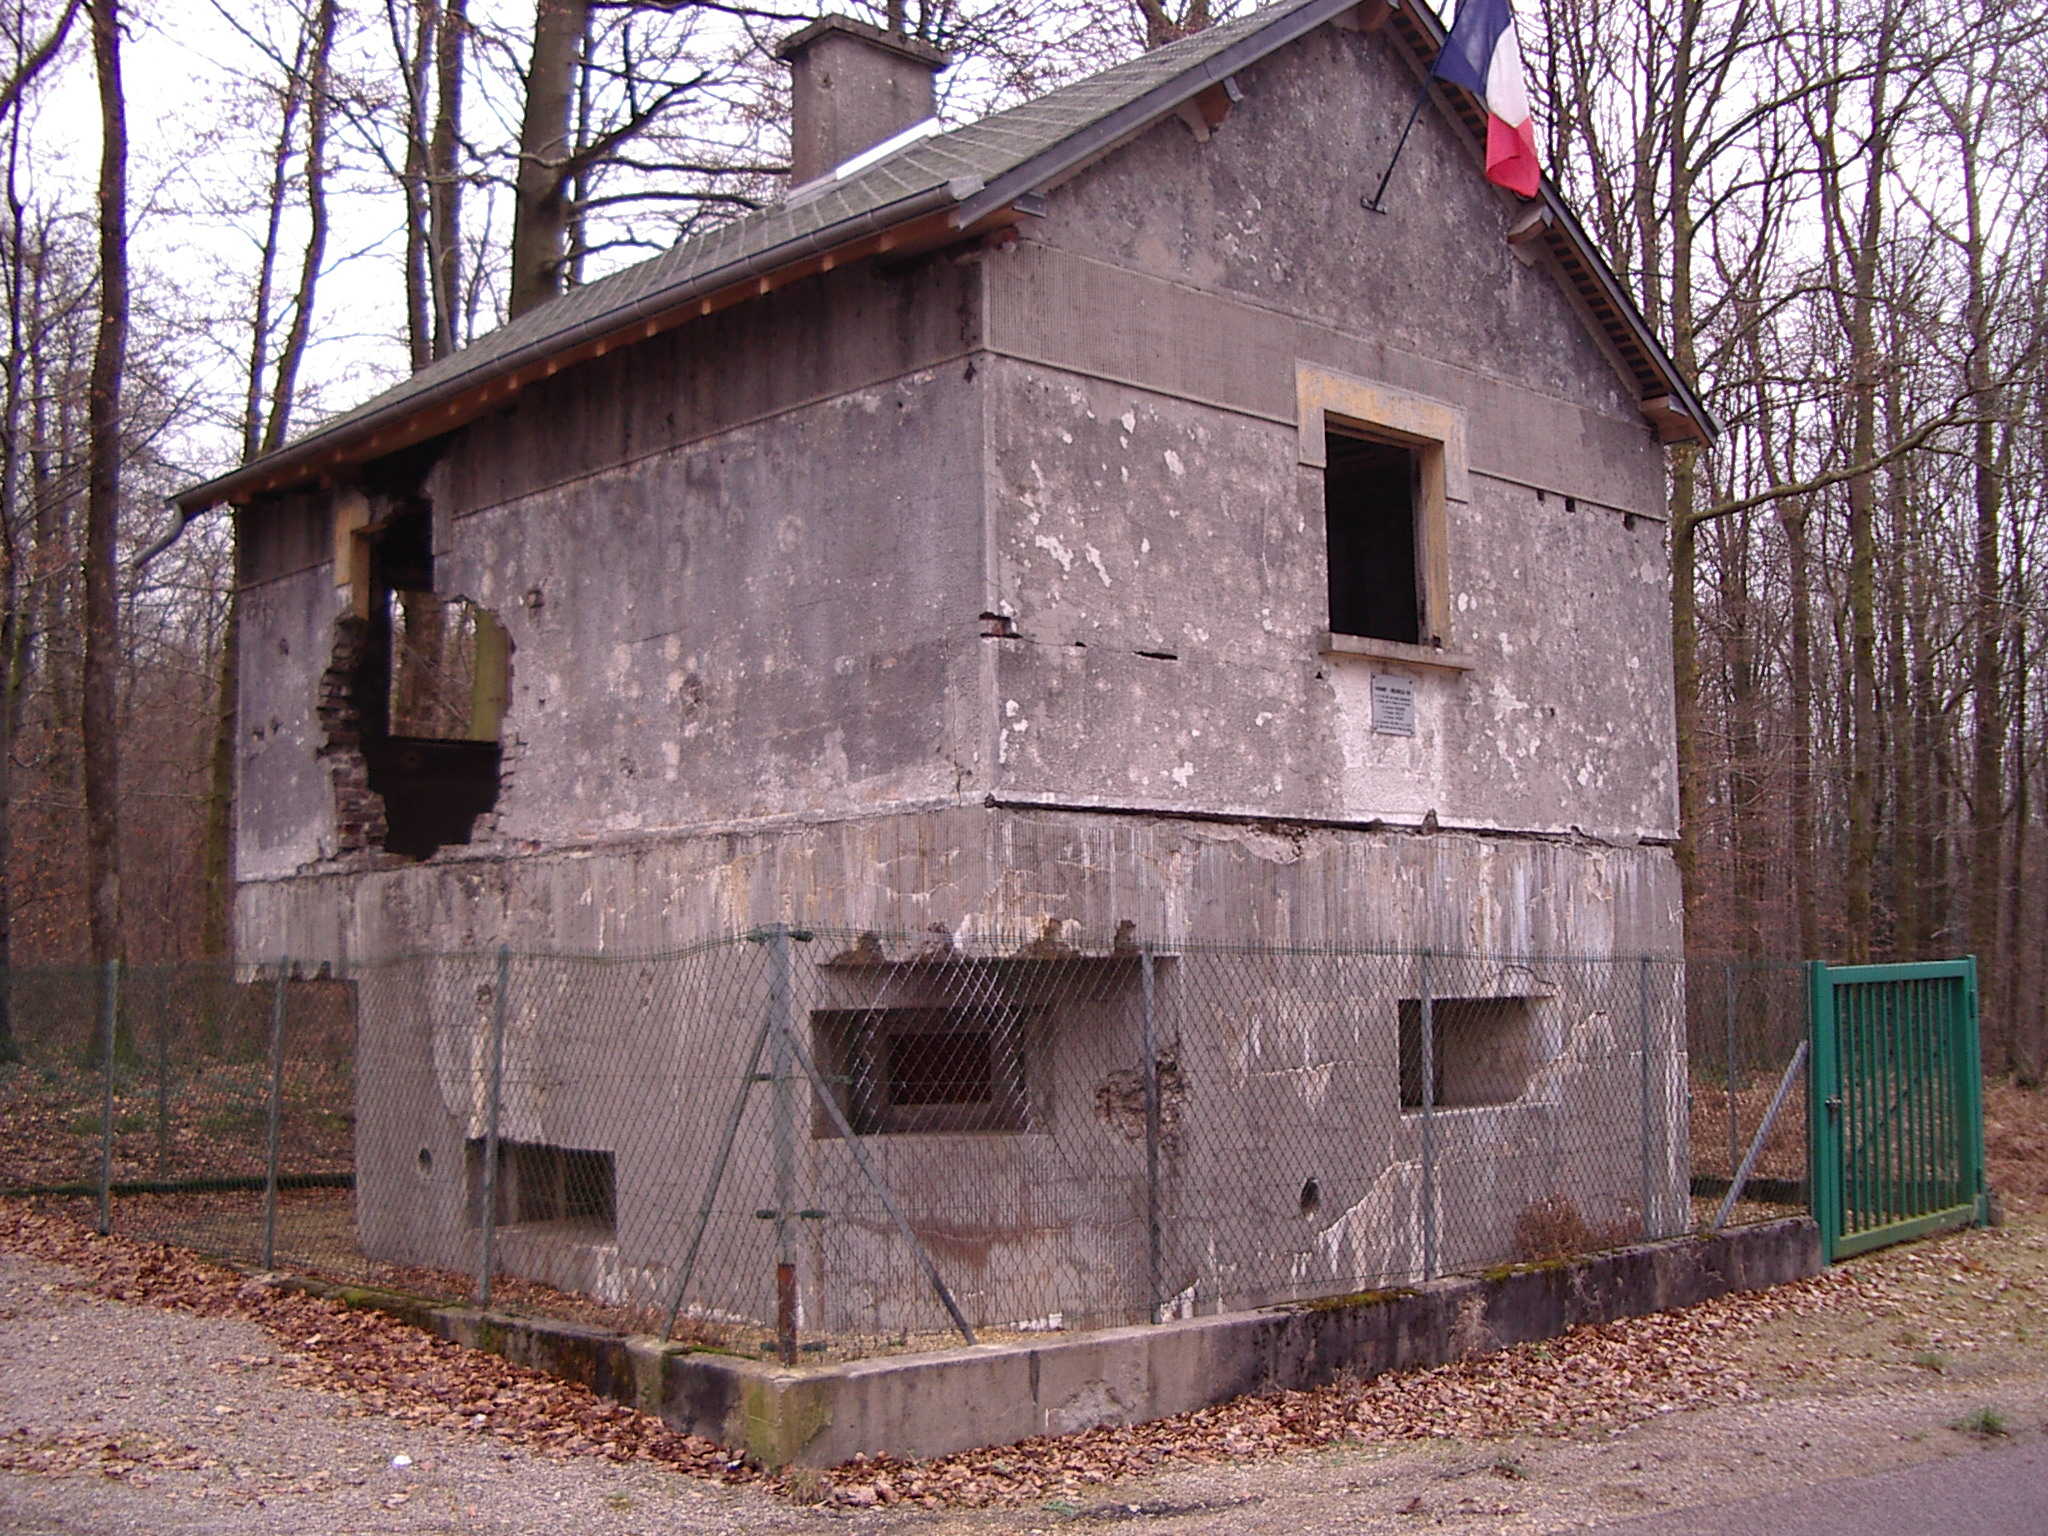 A border pillbox at Saint Menges